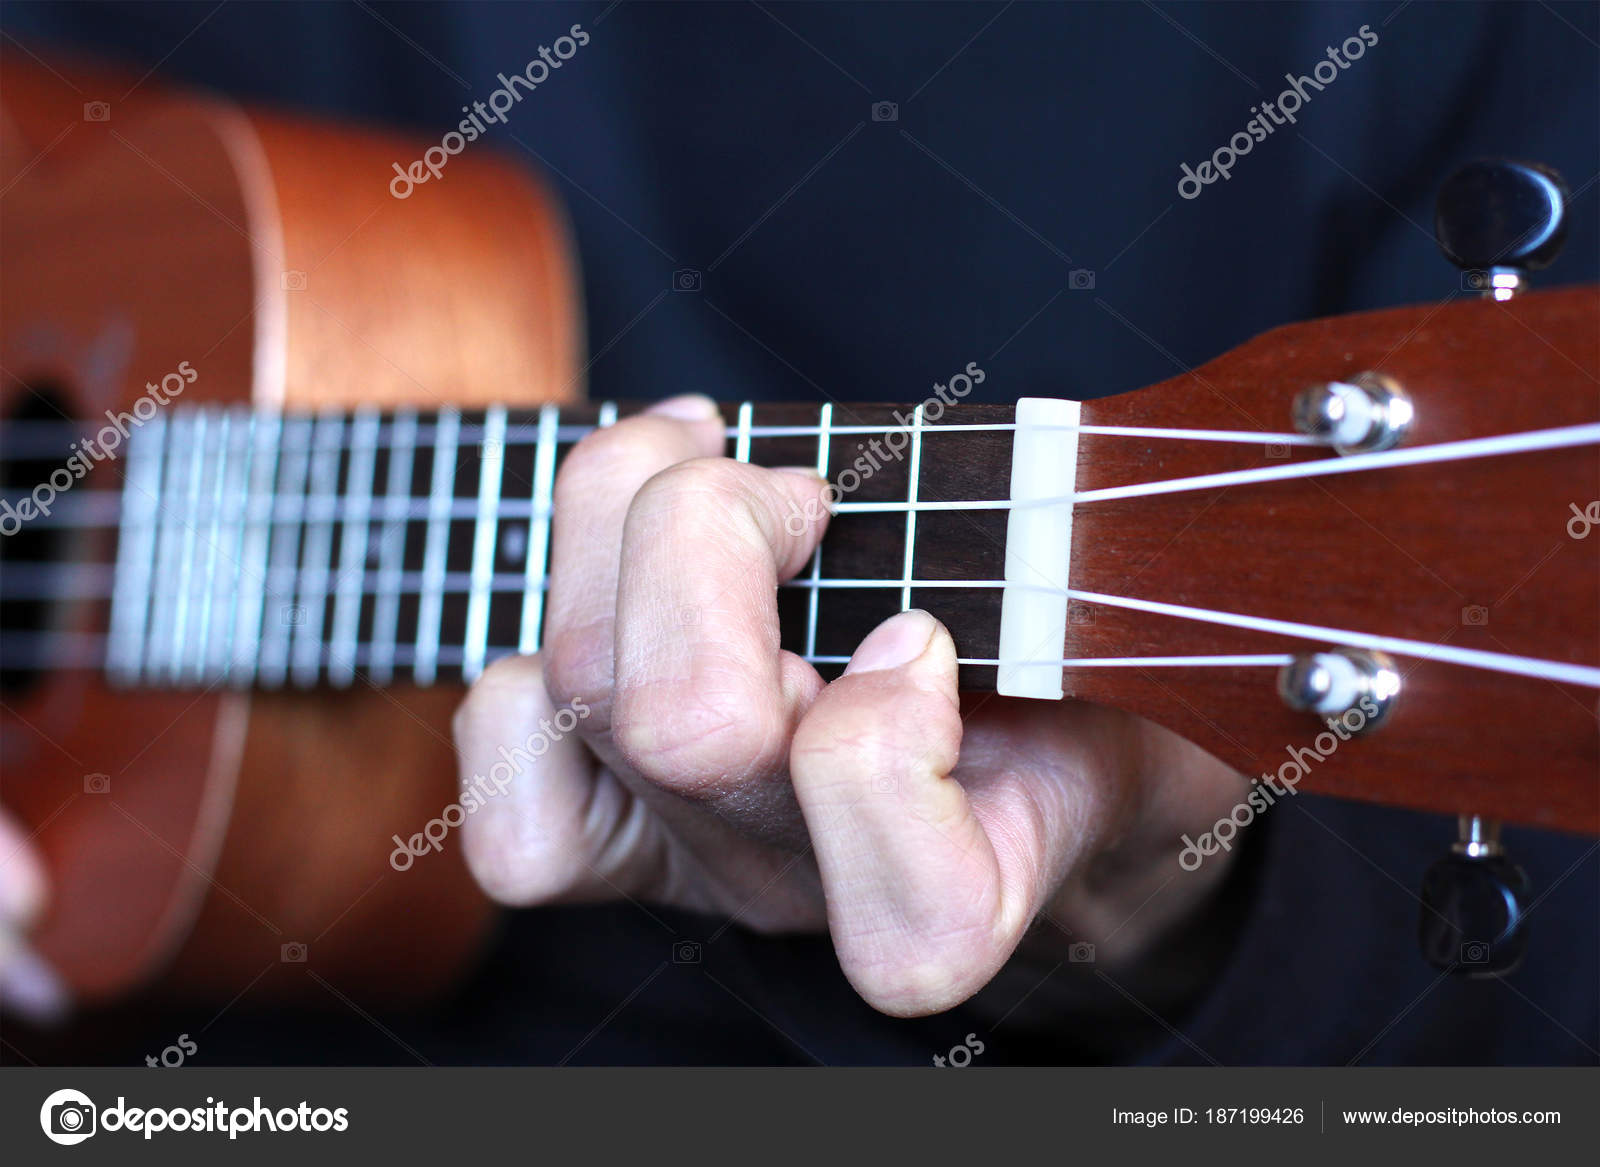 Left Musician Hand Clamps The Chord On The Ukulele Fretboard Stock